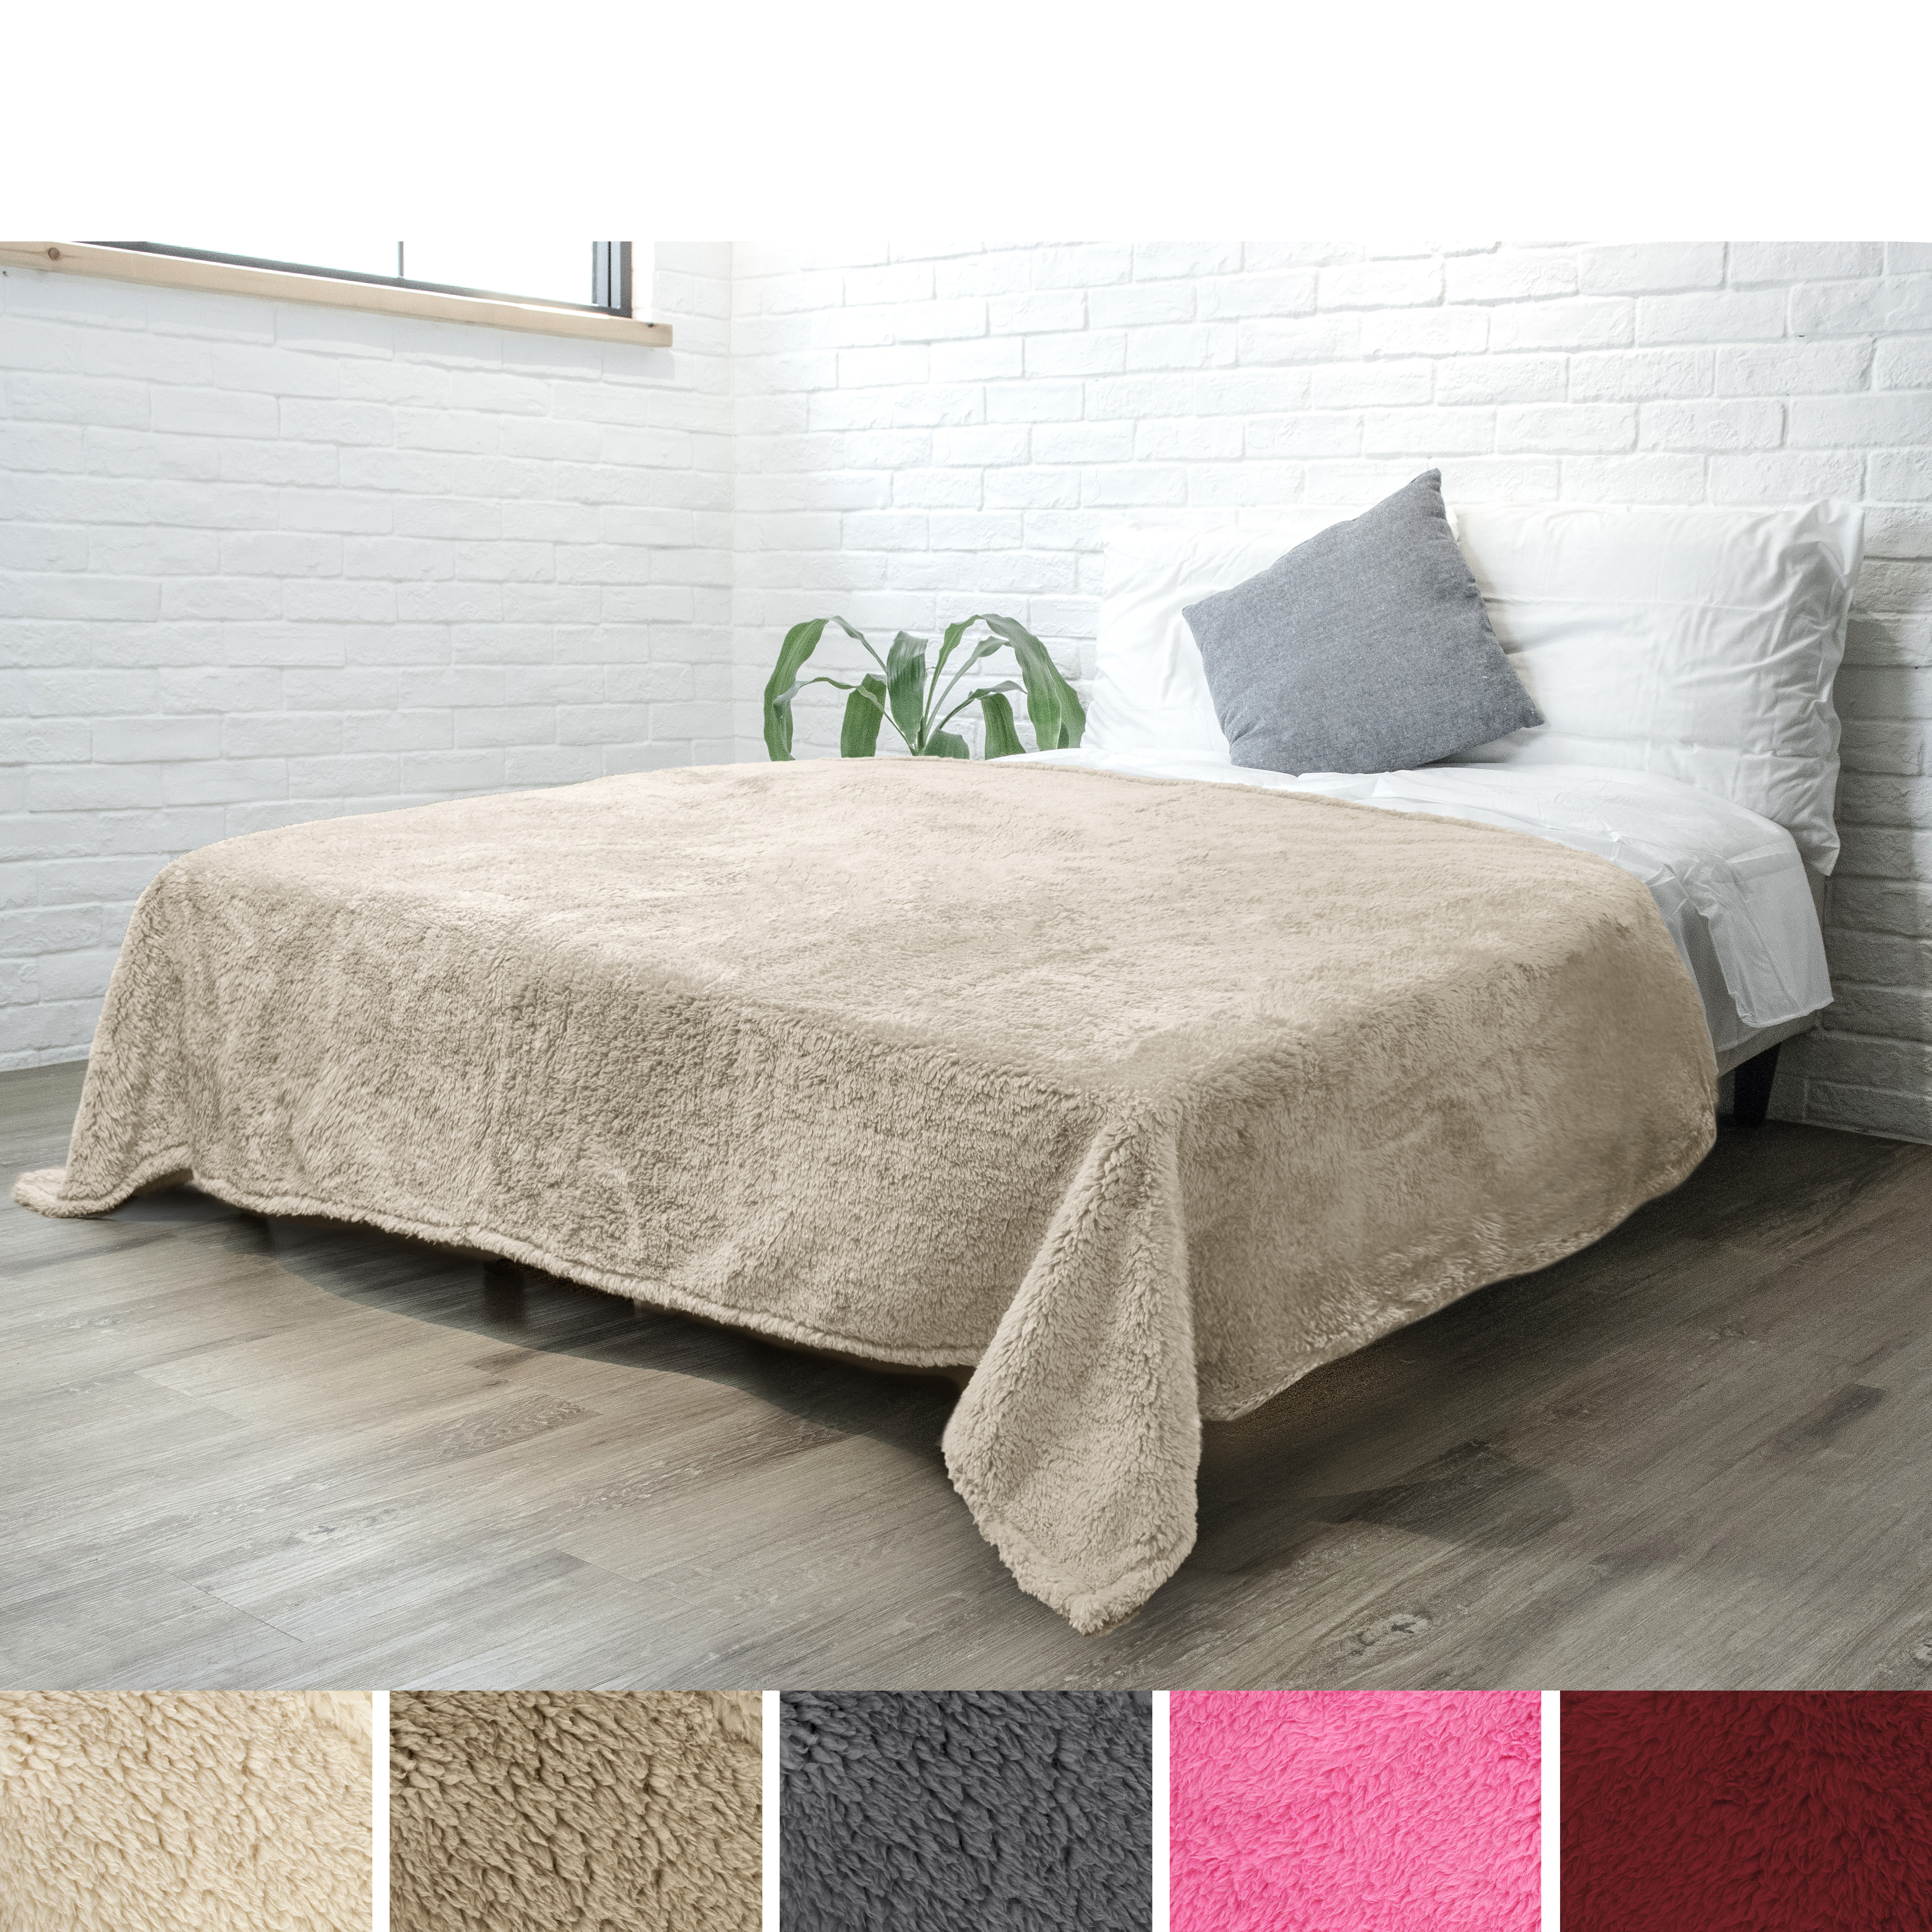 Soft-Fuzzy-Warm-Cozy-Throw-Blanket-with-Fluffy-Sherpa-Fleece-for-Sofa-Couch-Bed thumbnail 43